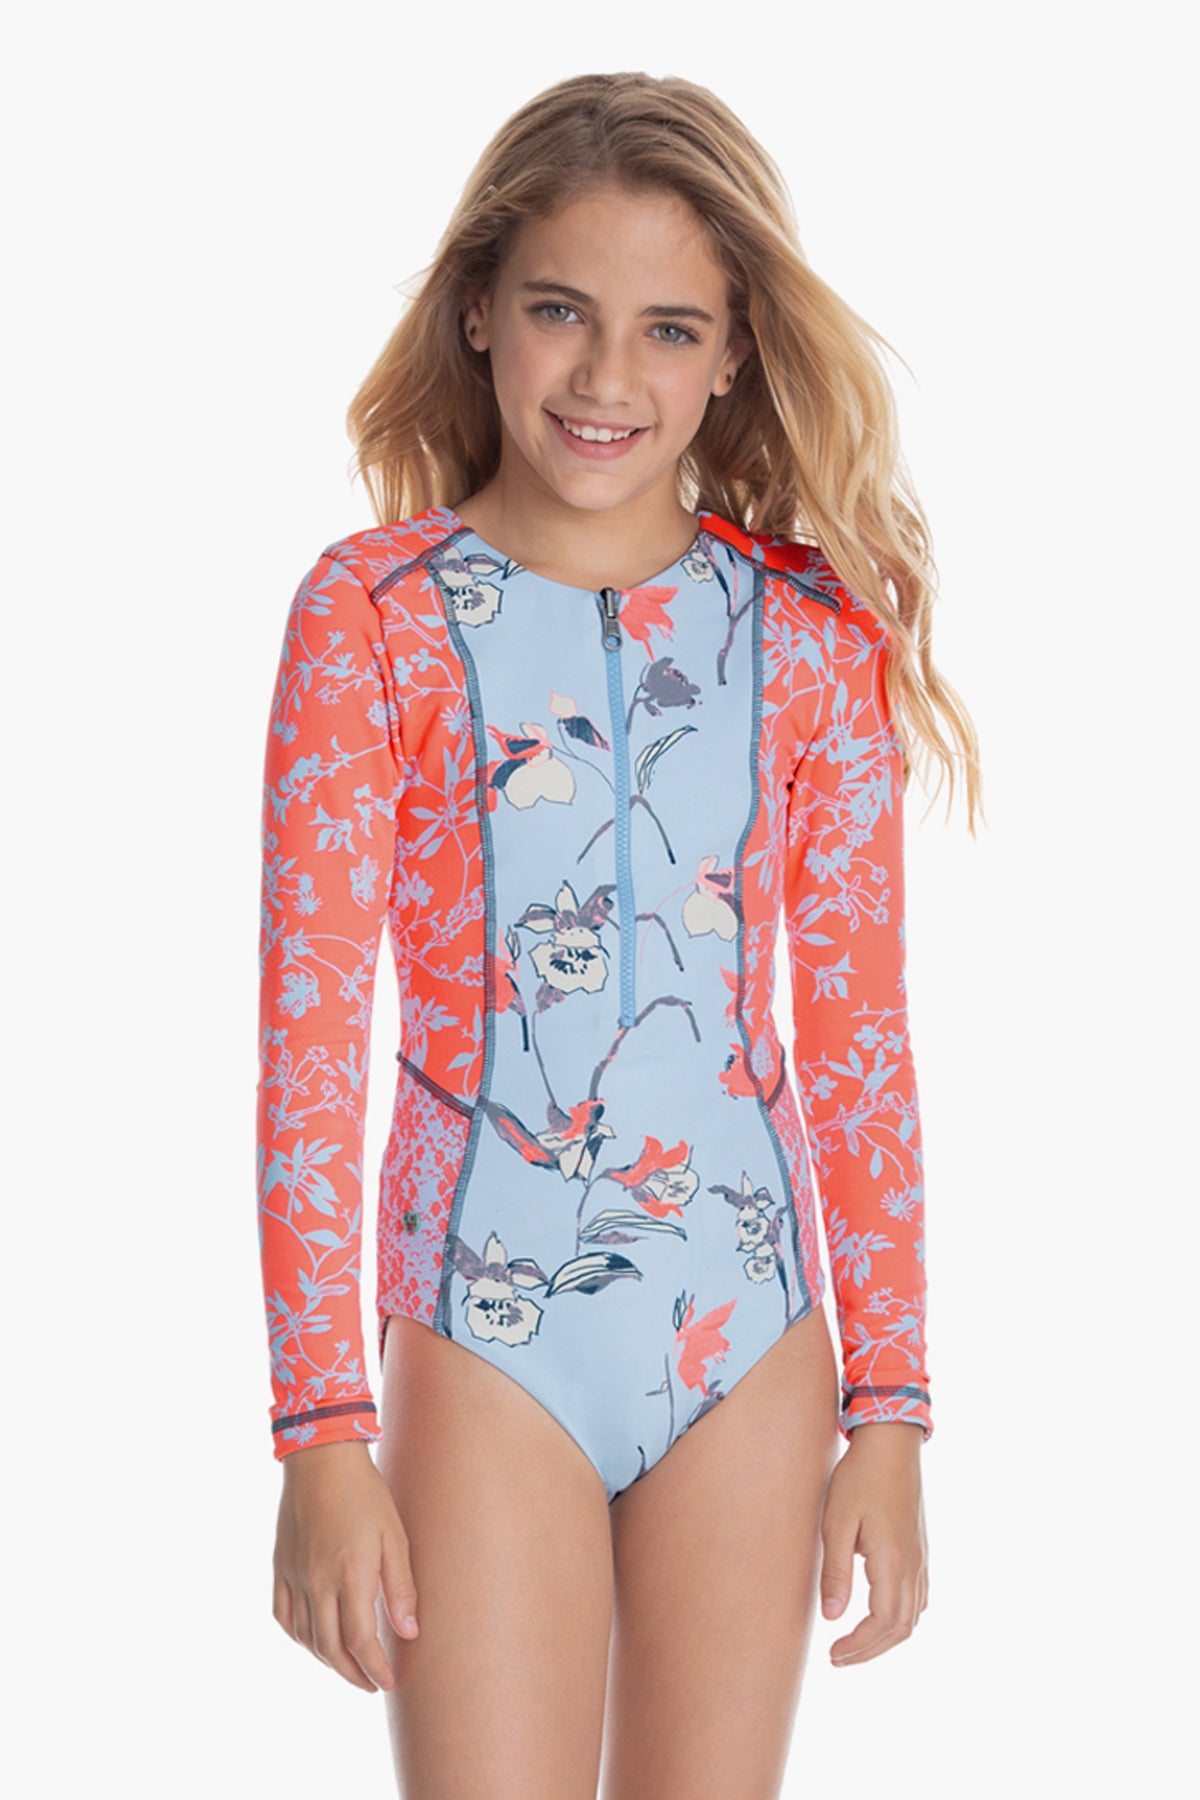 Maaji Ariel's Daydream Girls Rash Guard Swimsuit